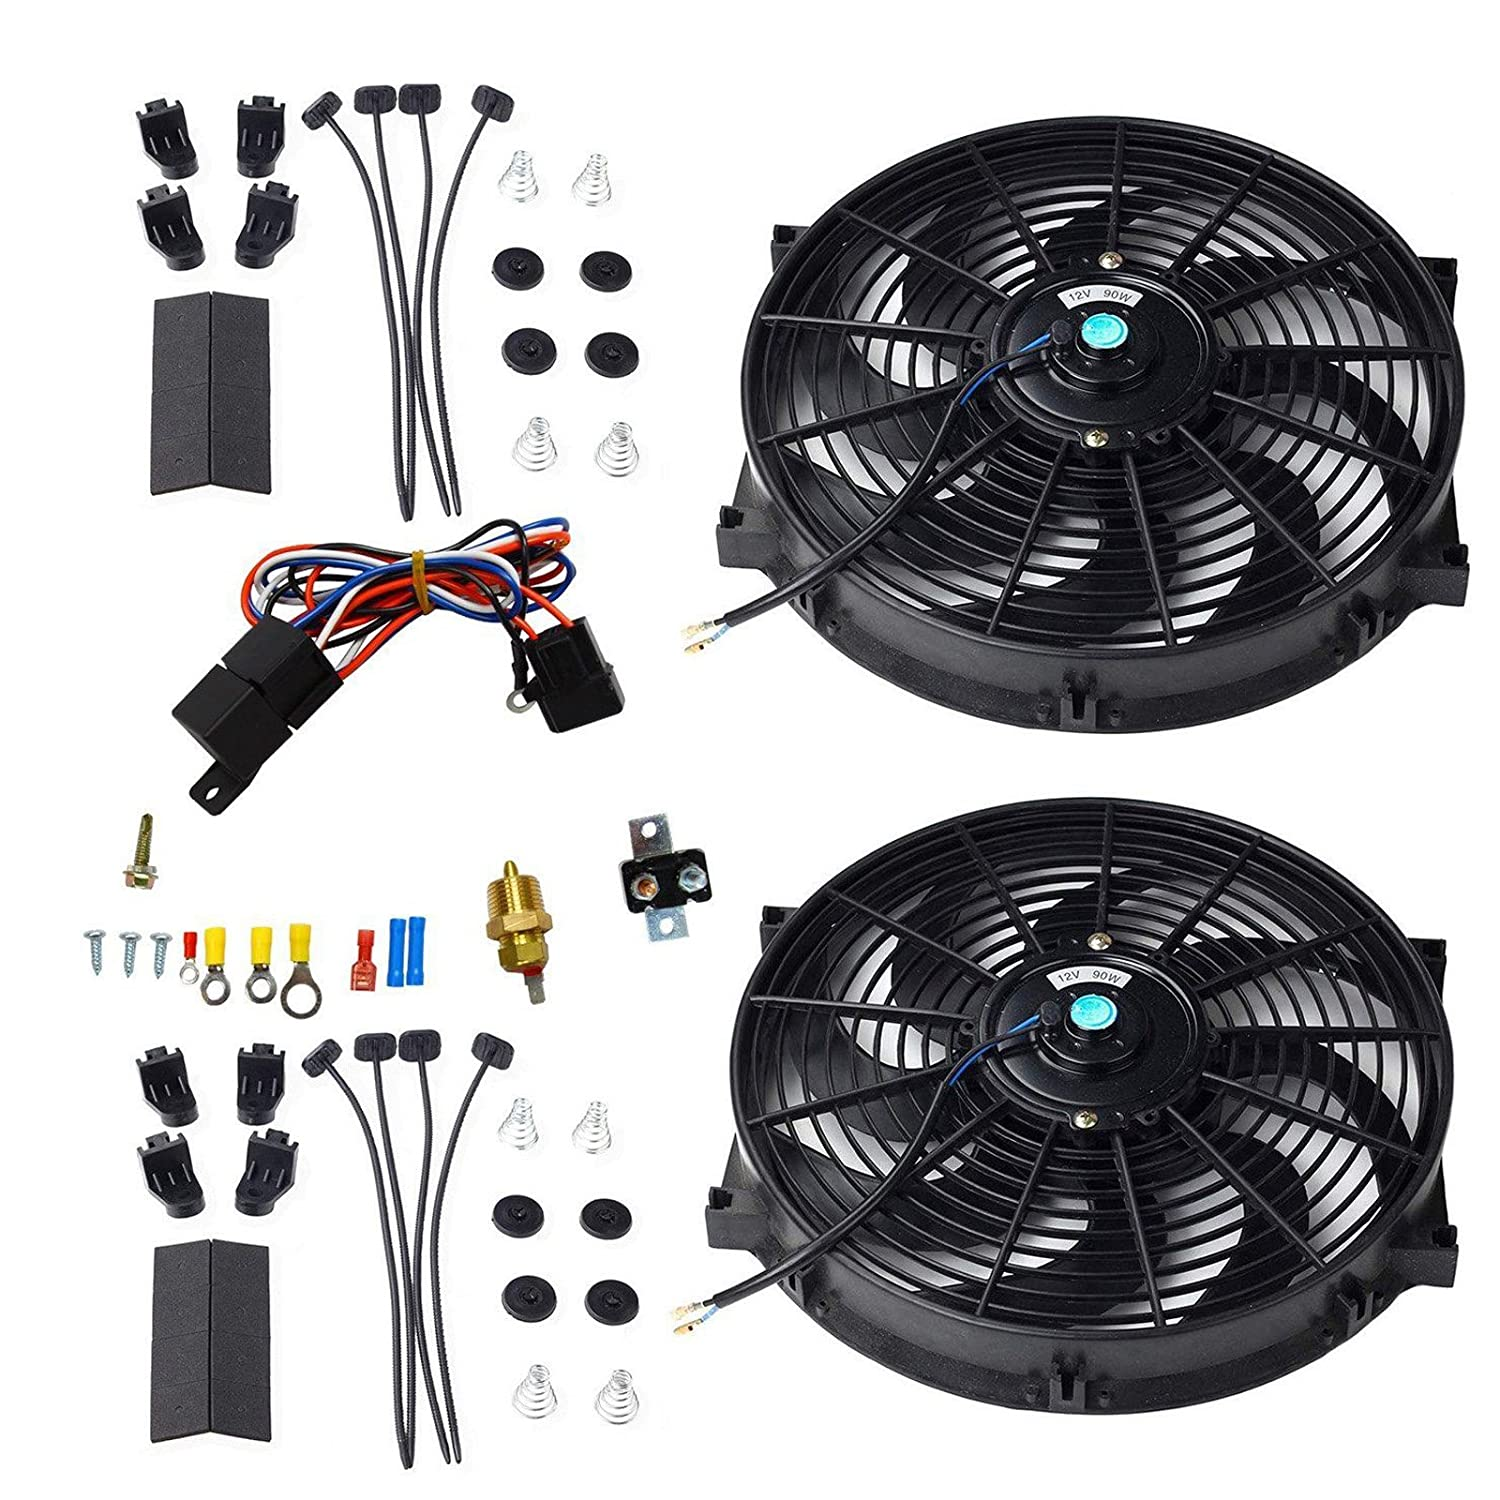 "BLACKHORSE-RACING 16"" Universal Electric Radiator Cooling Fans + Thermostat Relay & Mount Kit (2 Pcs)"